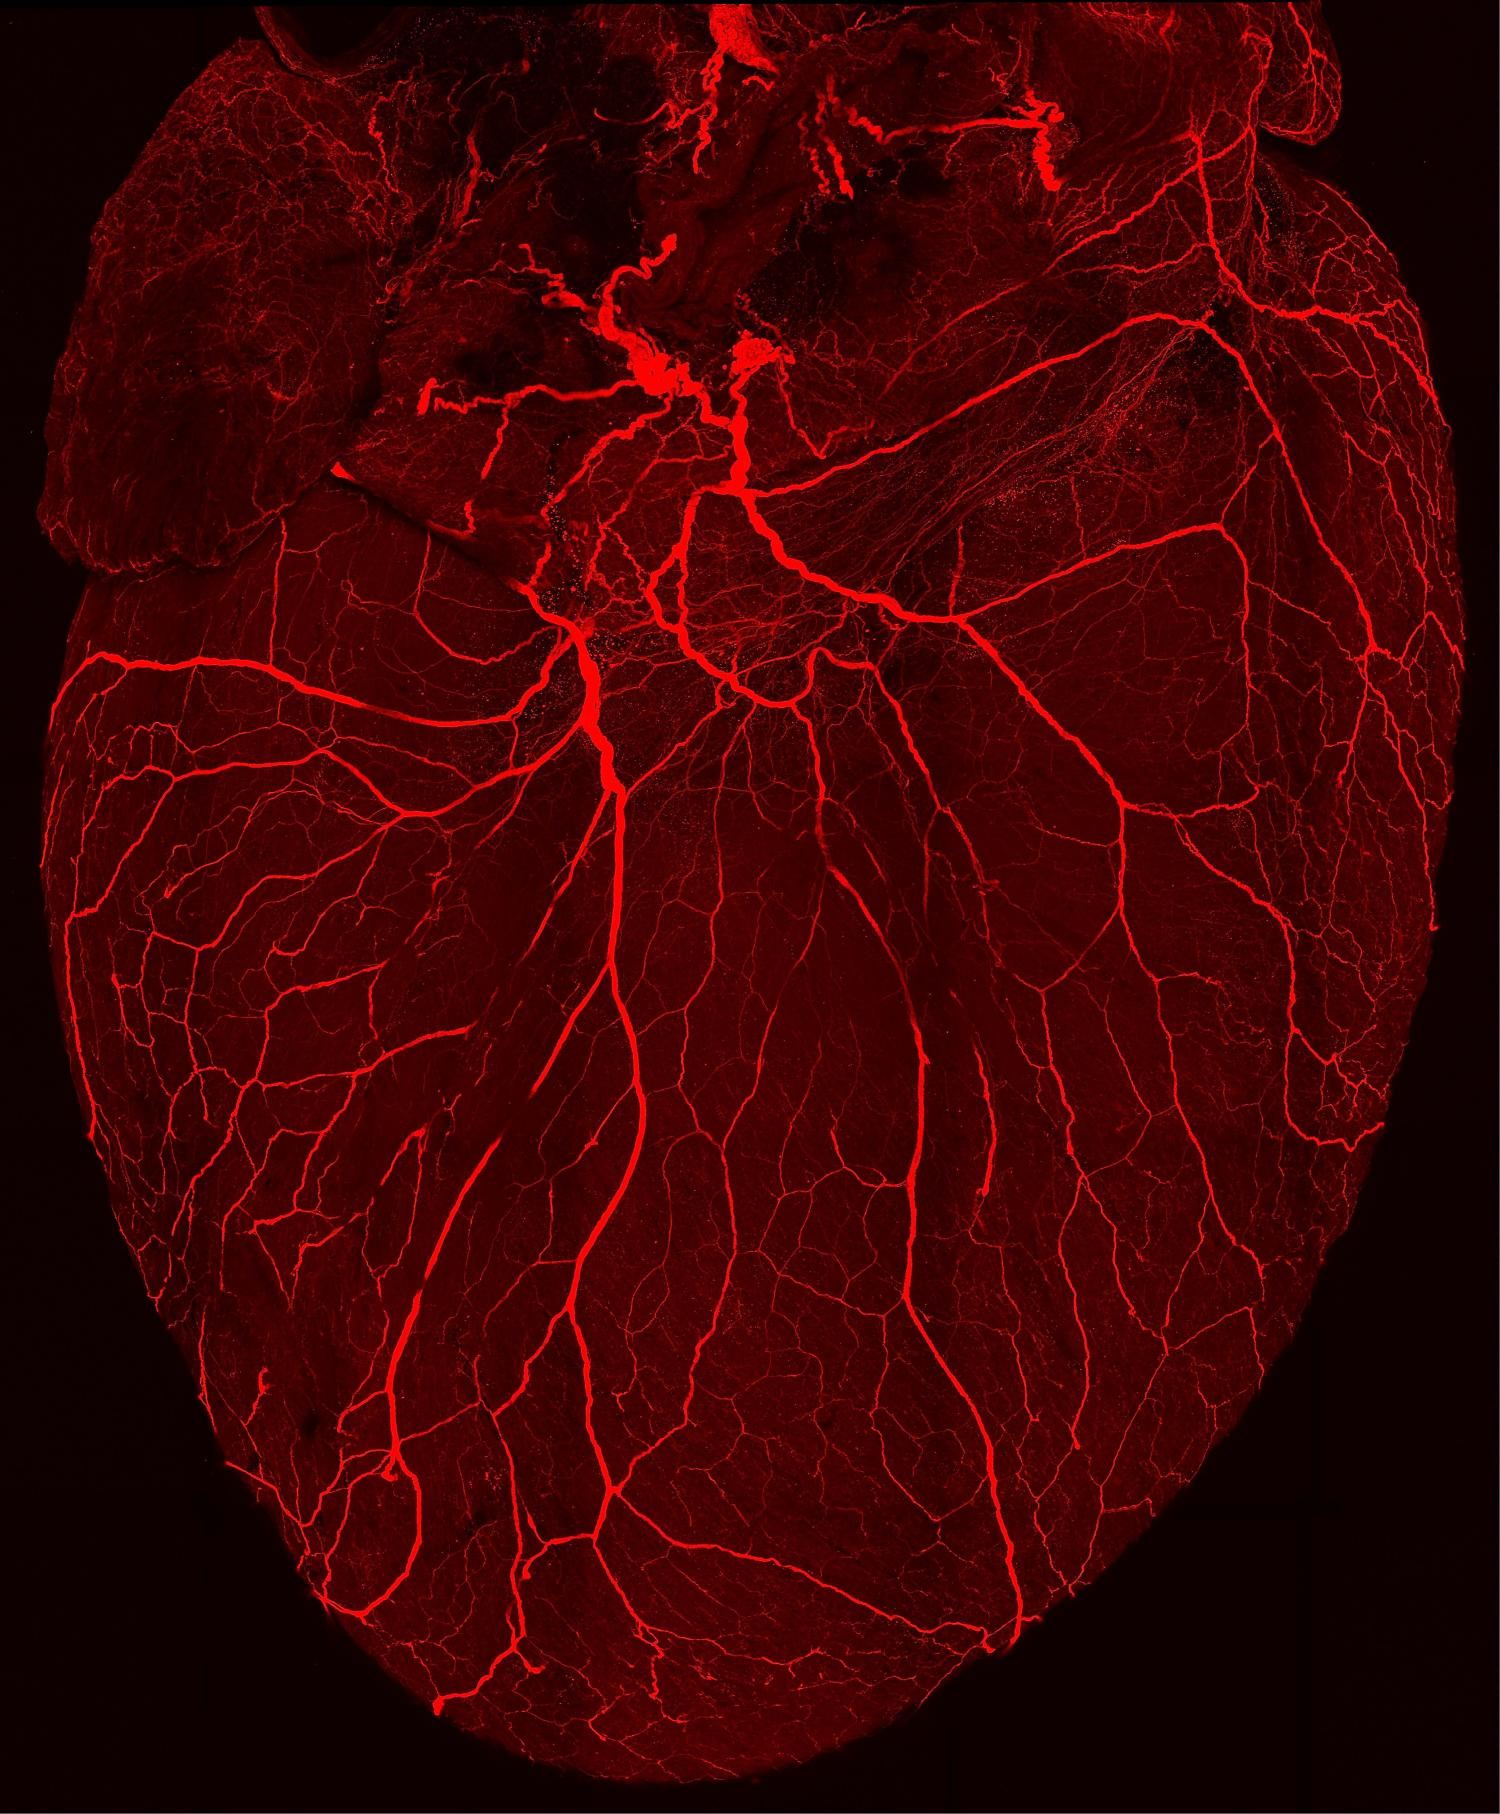 UCLA-led consortium will map the heart\'s nervous system